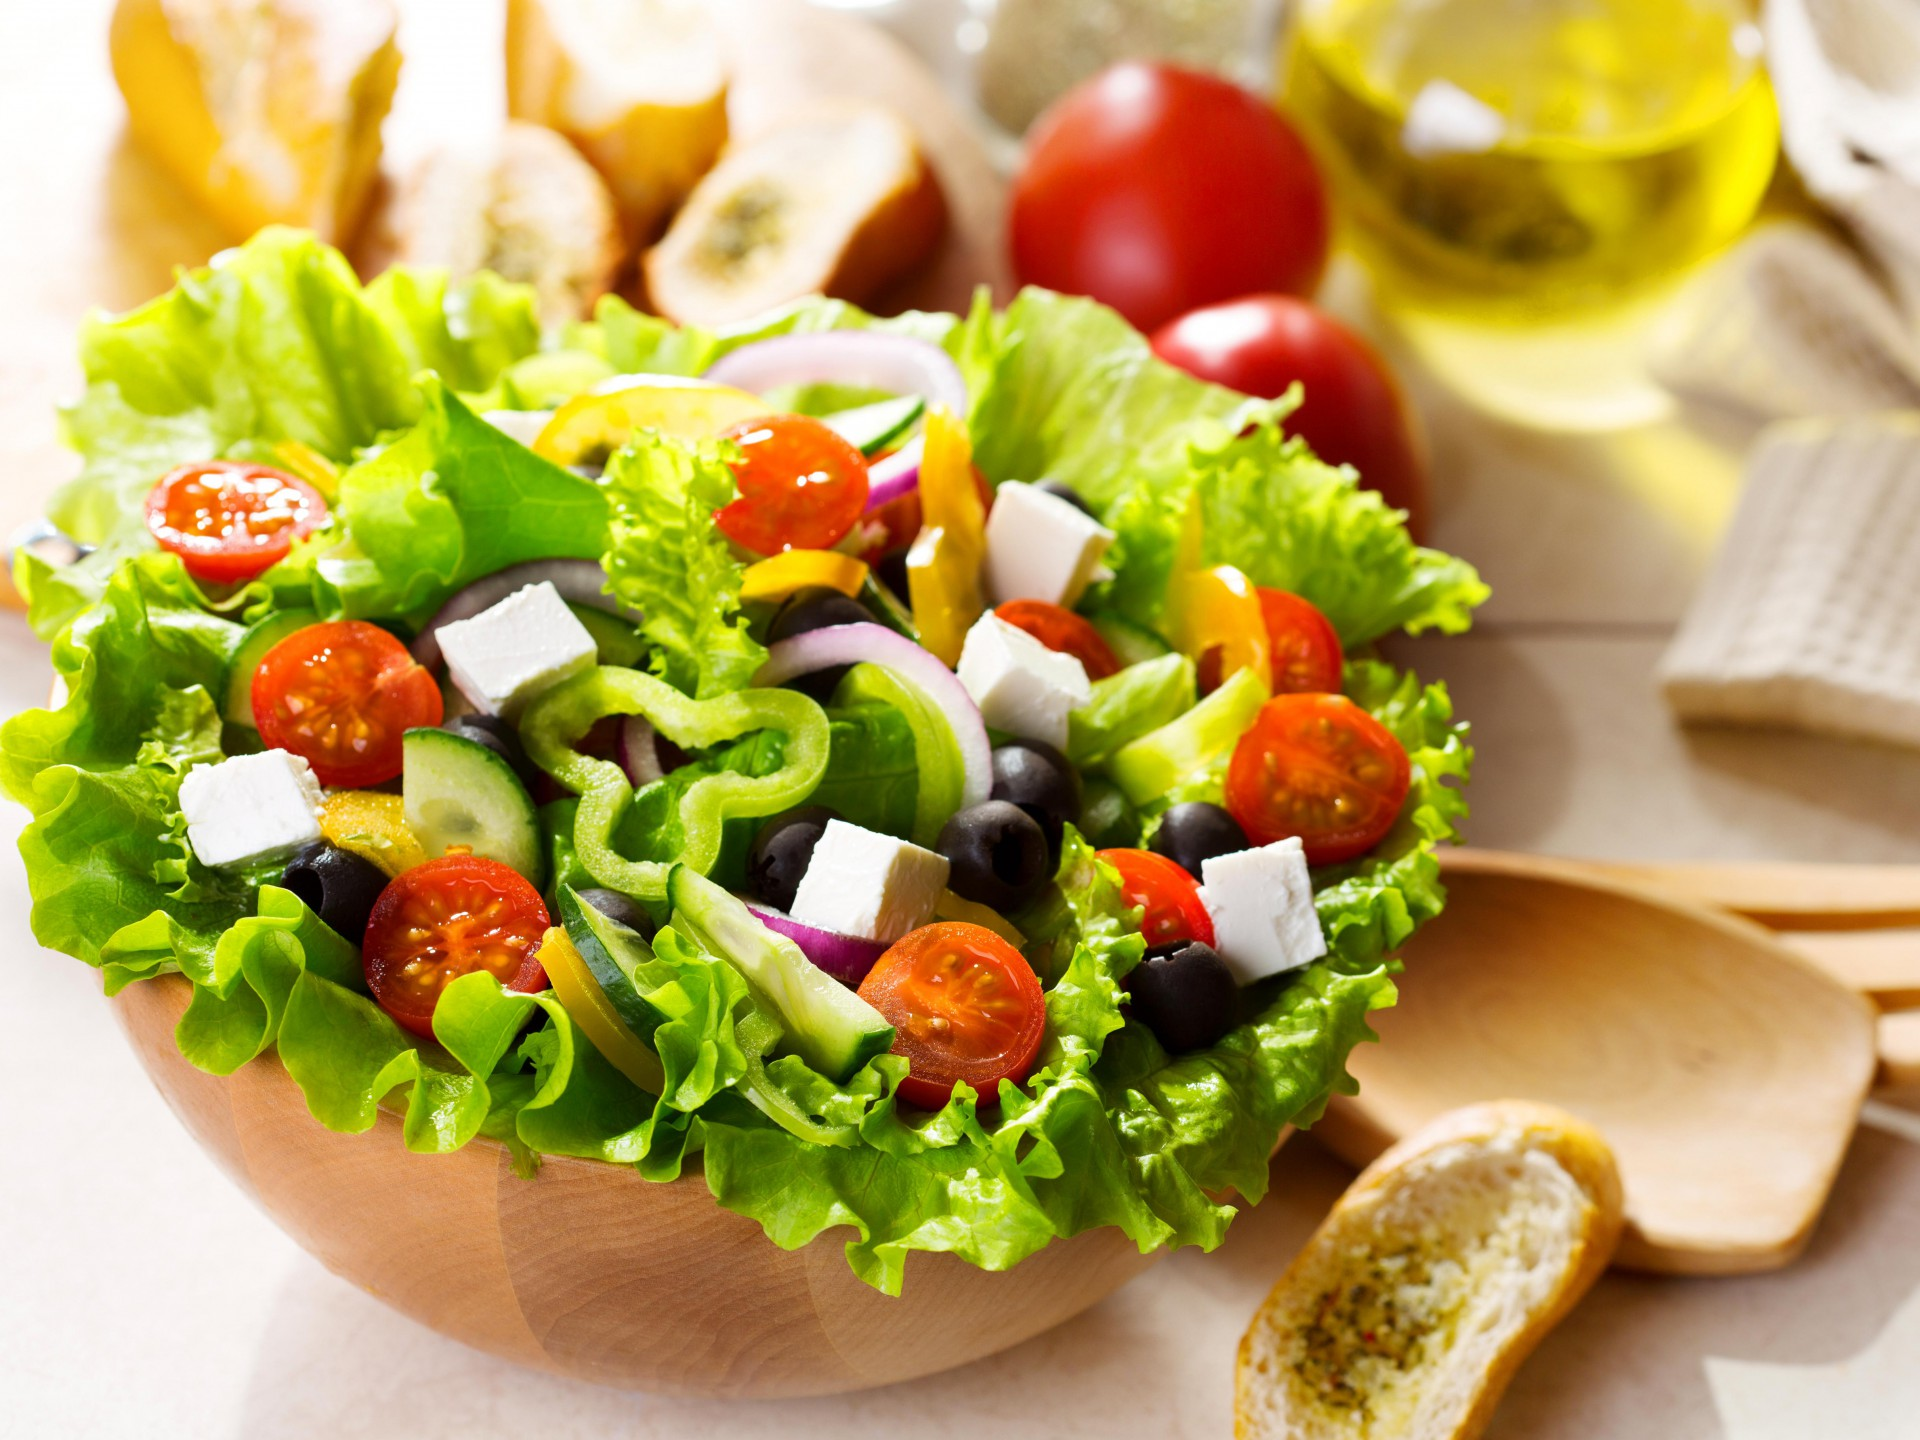 Lovely Salad Wallpaper 42152 1920x1440 px